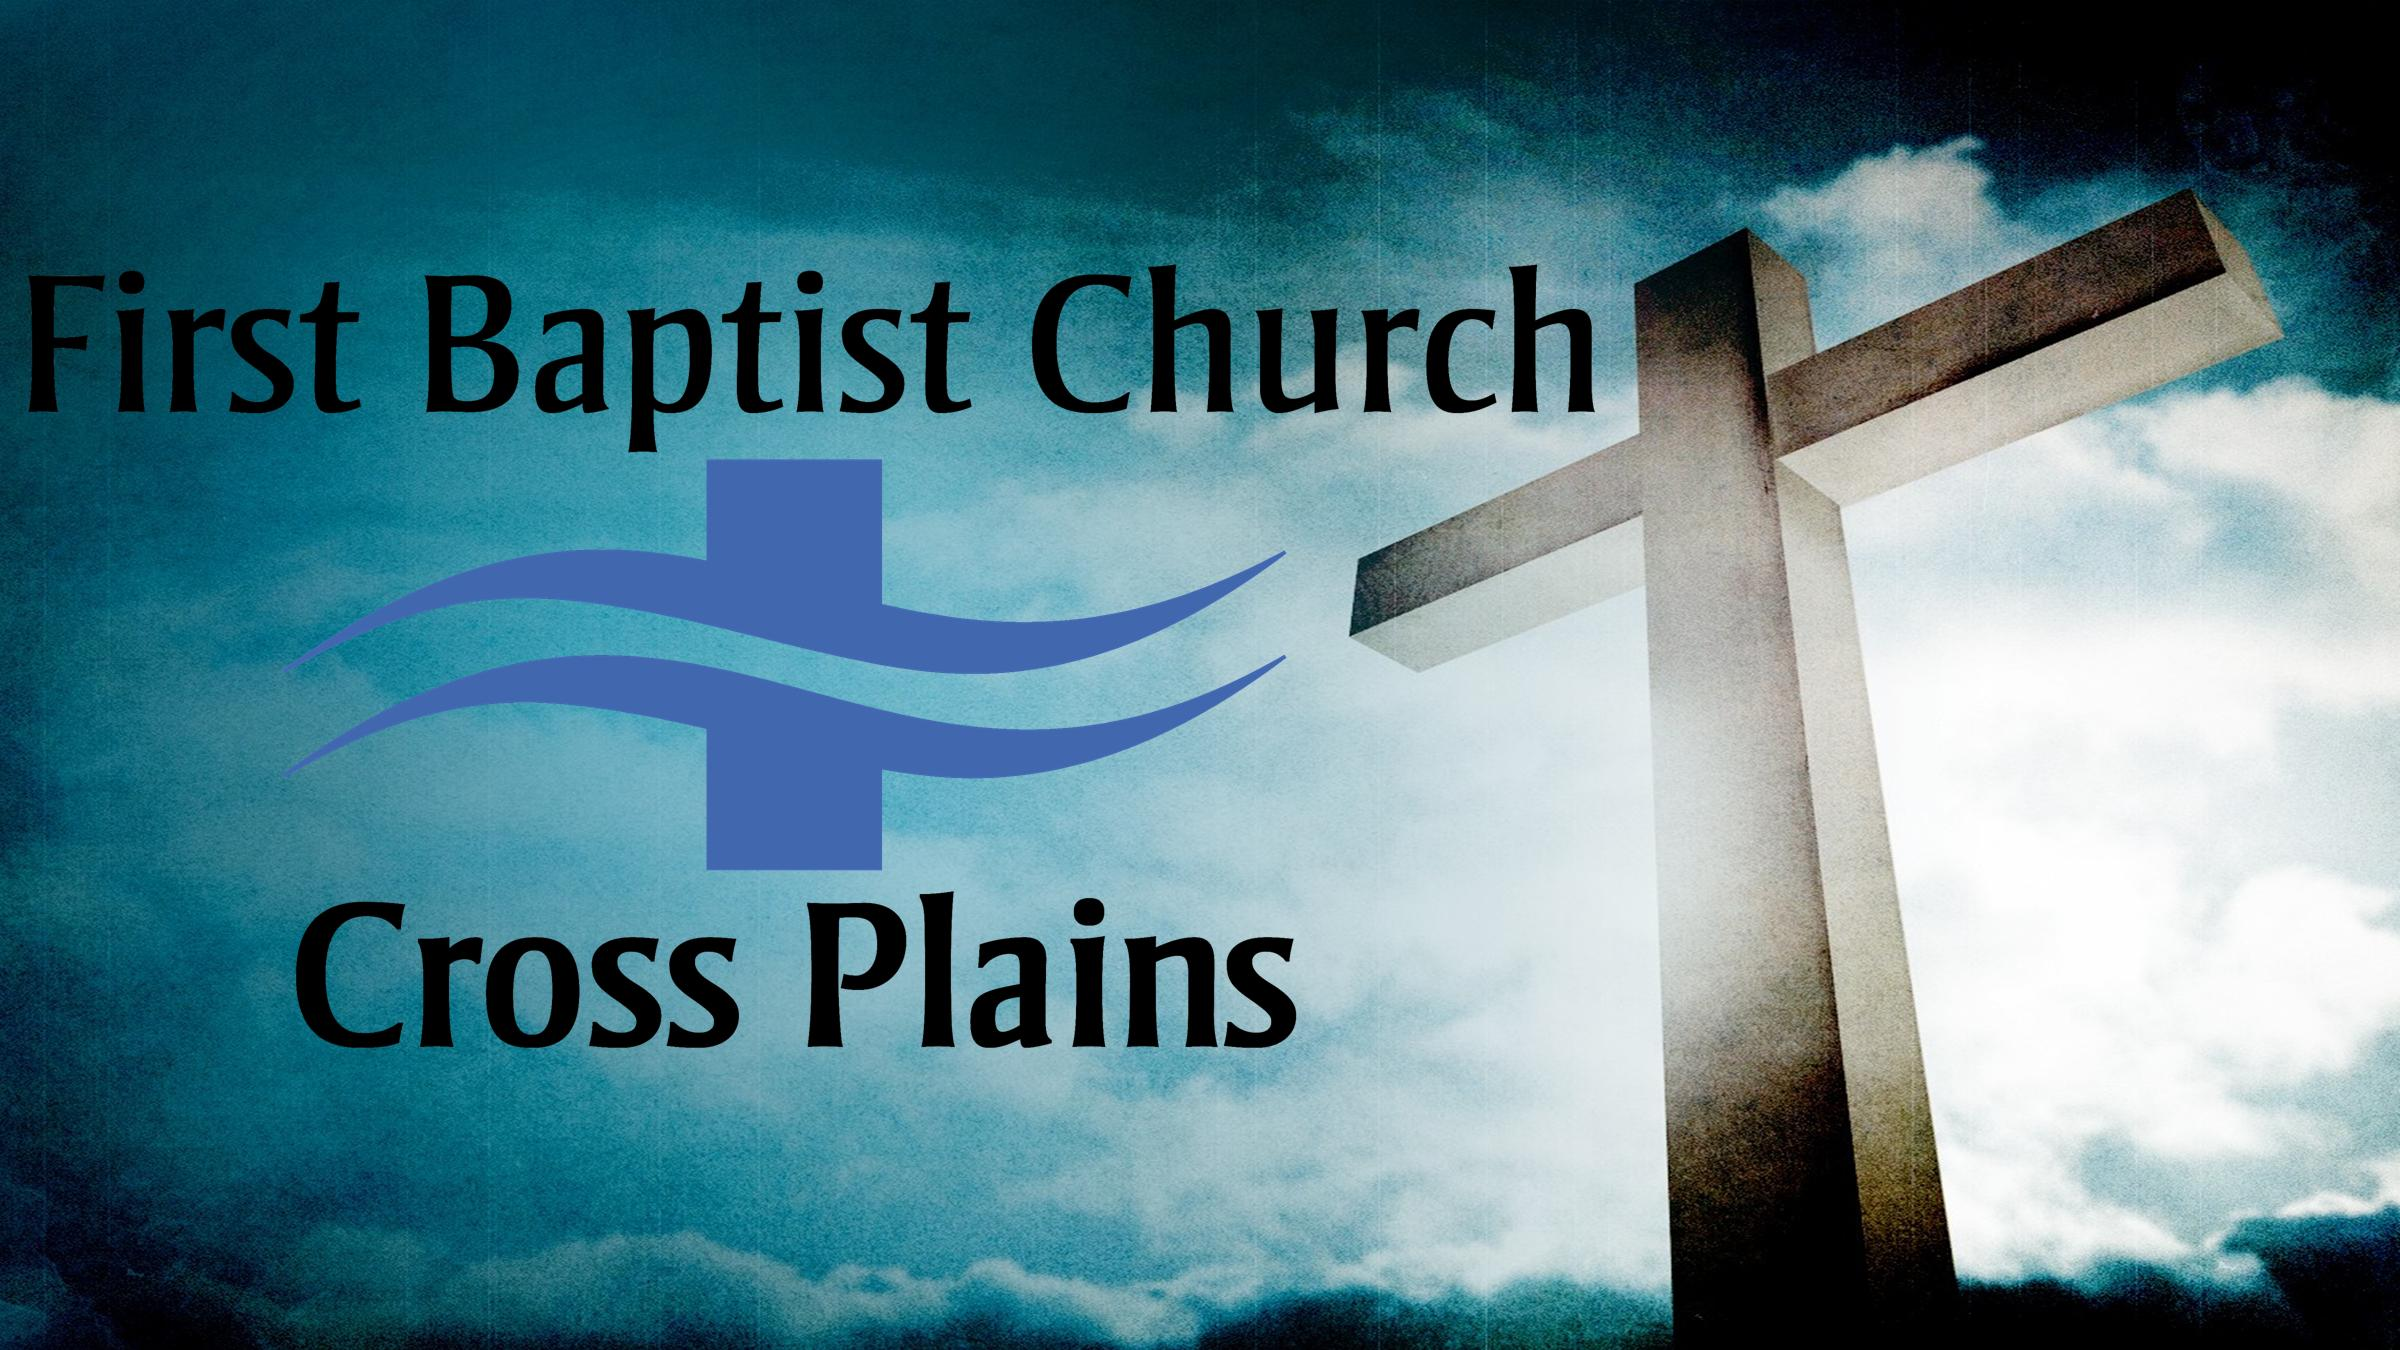 First Baptist Church Cross Plains